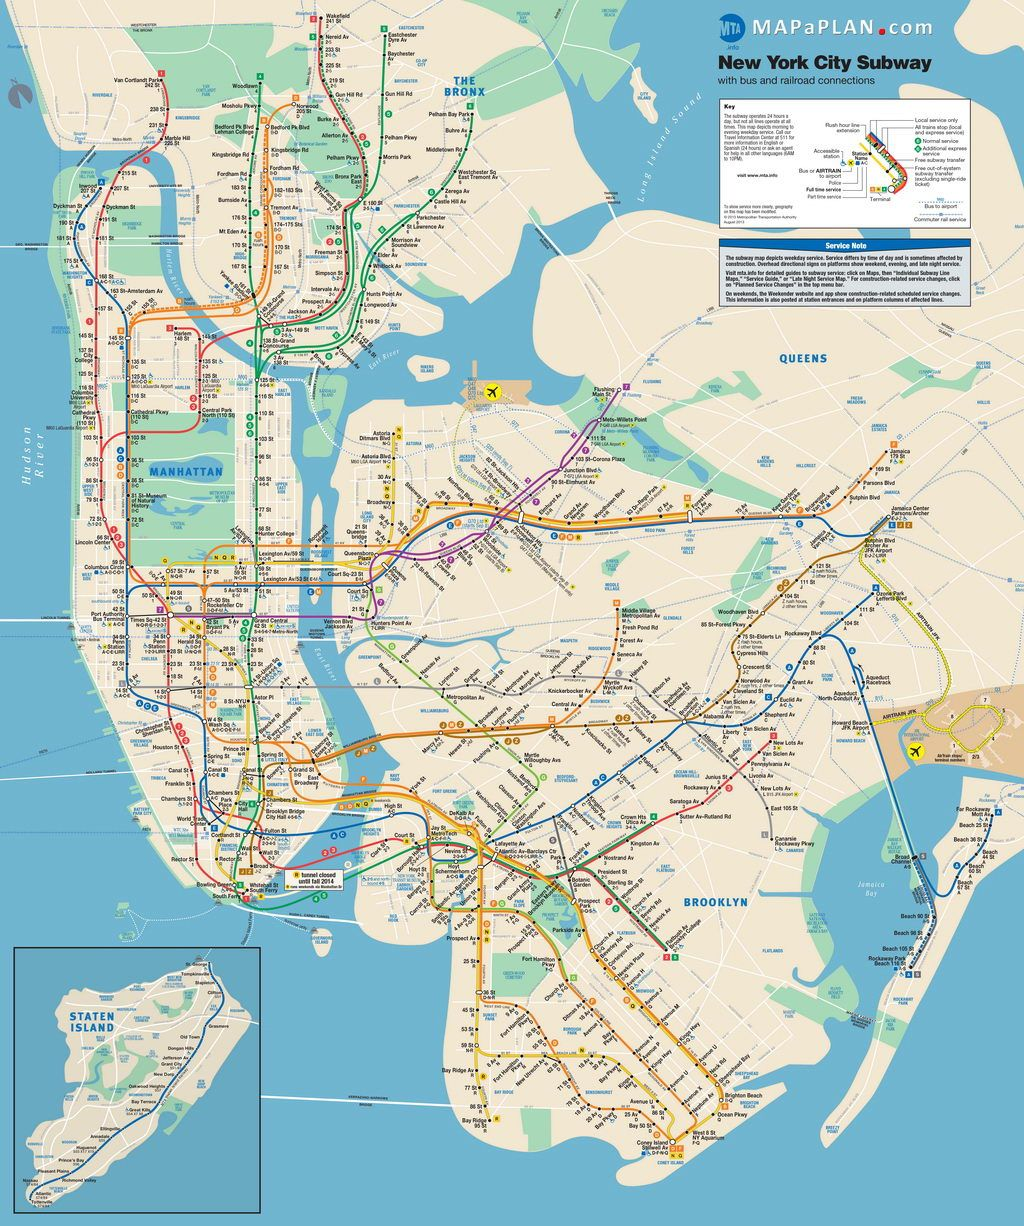 greatthingstodowithkidschildreninteractivecolorfulnew – Map Of New York Tourist Attractions